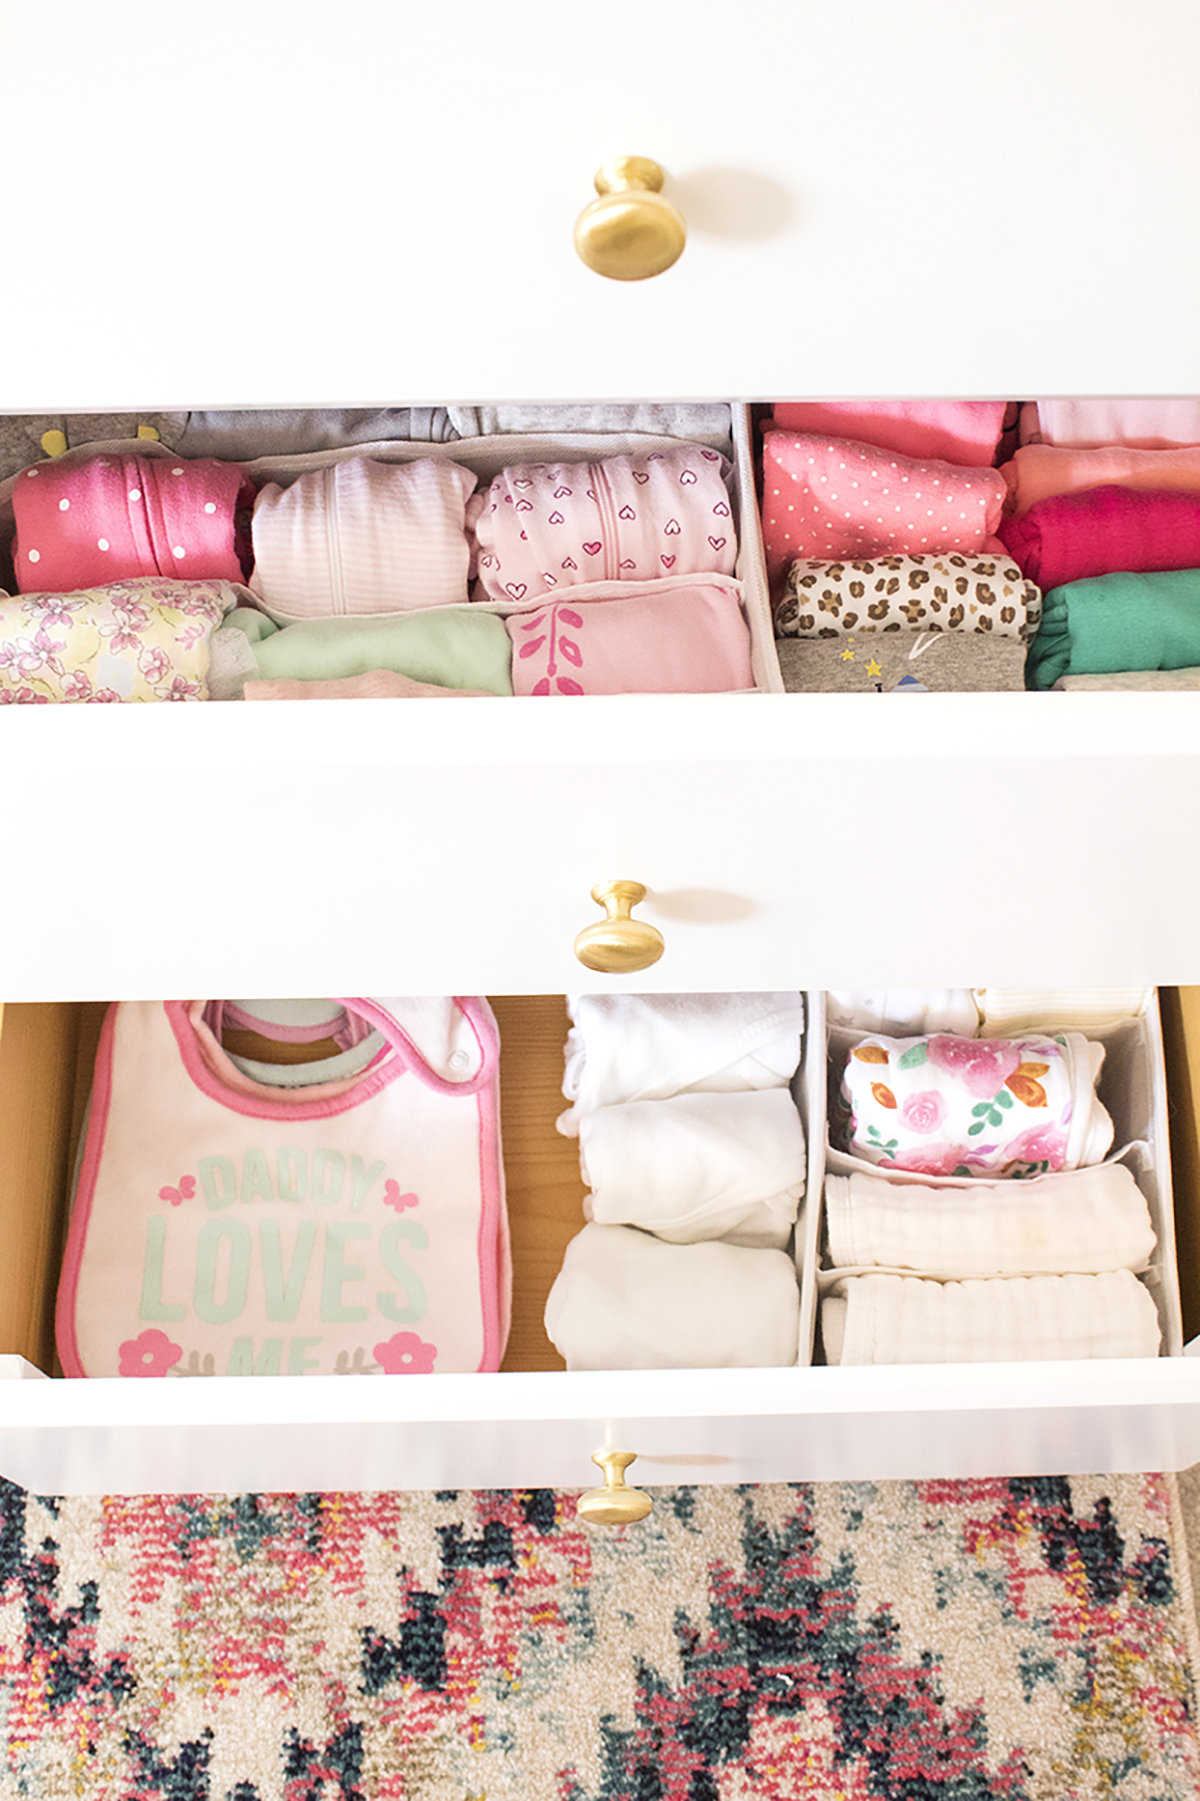 Looking for some nursery organization ideas? Check out this colorful and affordable nursery tour! From the closet to the dressers, I'll show you where to store all of baby's essentials. #nurseyorganizationideas #nurseryorganizationhacks #nurserydresserorganization